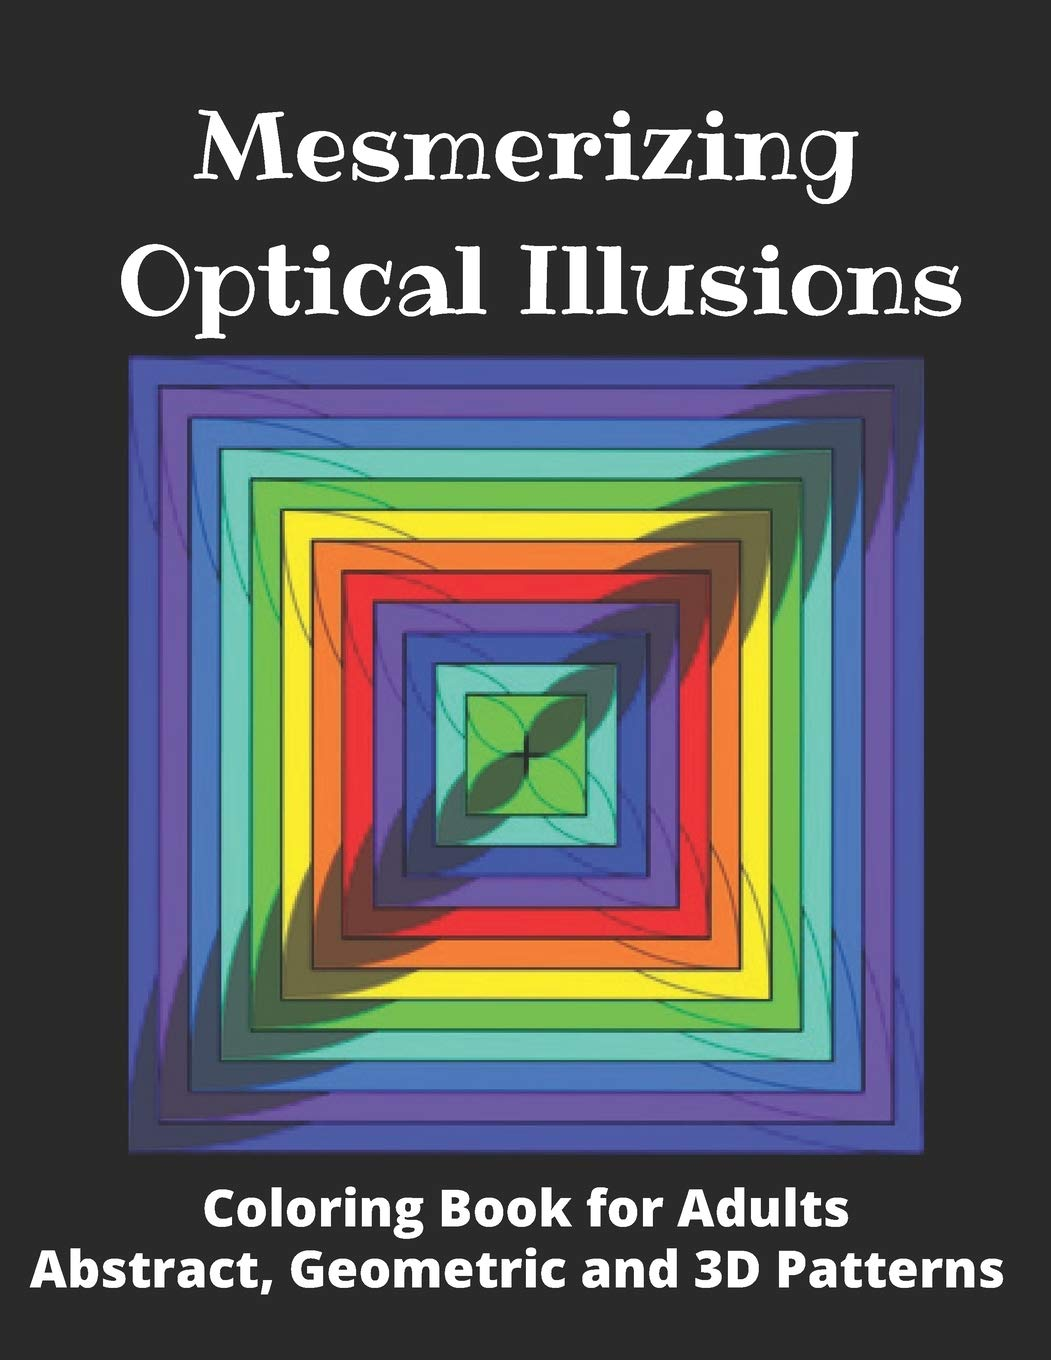 Amazon Com Mesmerizing Optical Illusions Coloring Book For Adults Abstract Geometric And 3d Patterns 8 5 X 11 100 Pages 9798648872721 Books Shahrazade Coloring Books